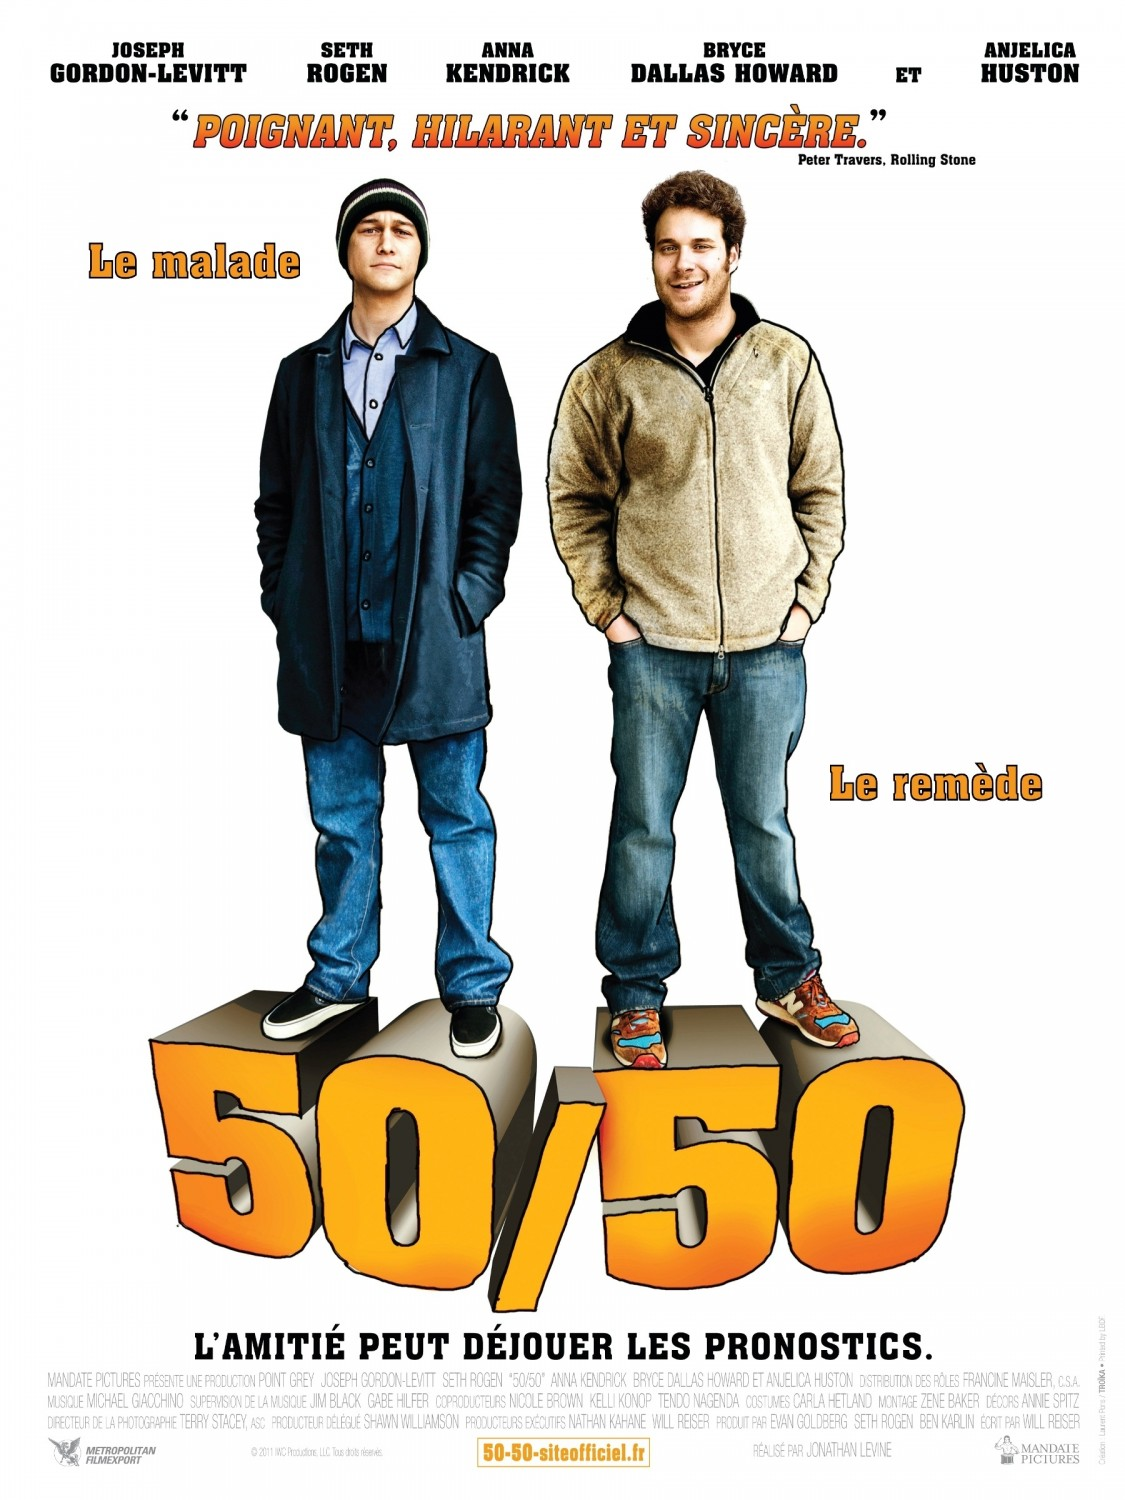 50*50 Great New Cartoony Poster For 50 50 With Joseph Gordon